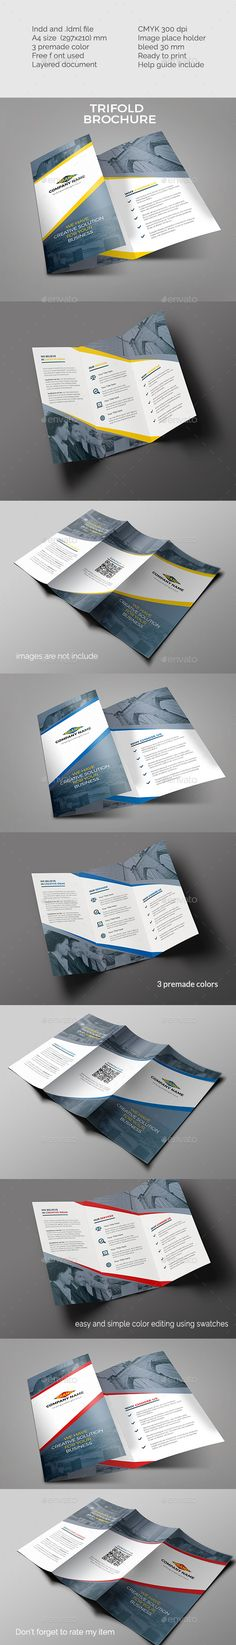 Simple Trifold Brochure Template InDesign INDD. Download here: http://graphicriver.net/item/simple-trifold-brochure/14936993?ref=ksioks